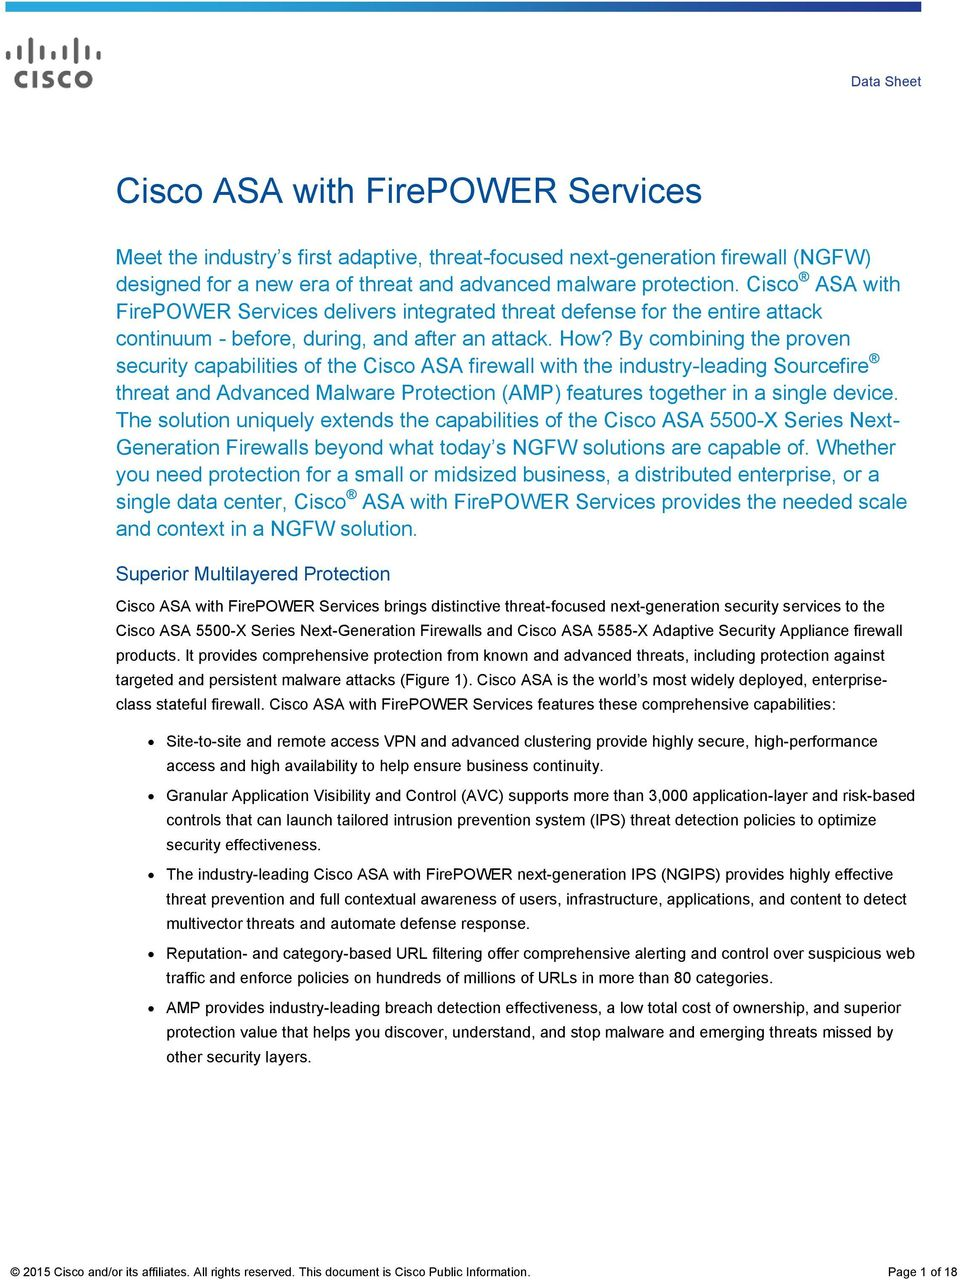 By combining the proven security capabilities of the Cisco ASA firewall with the industry-leading Sourcefire threat and Advanced Malware Protection (AMP) features together in a single device.